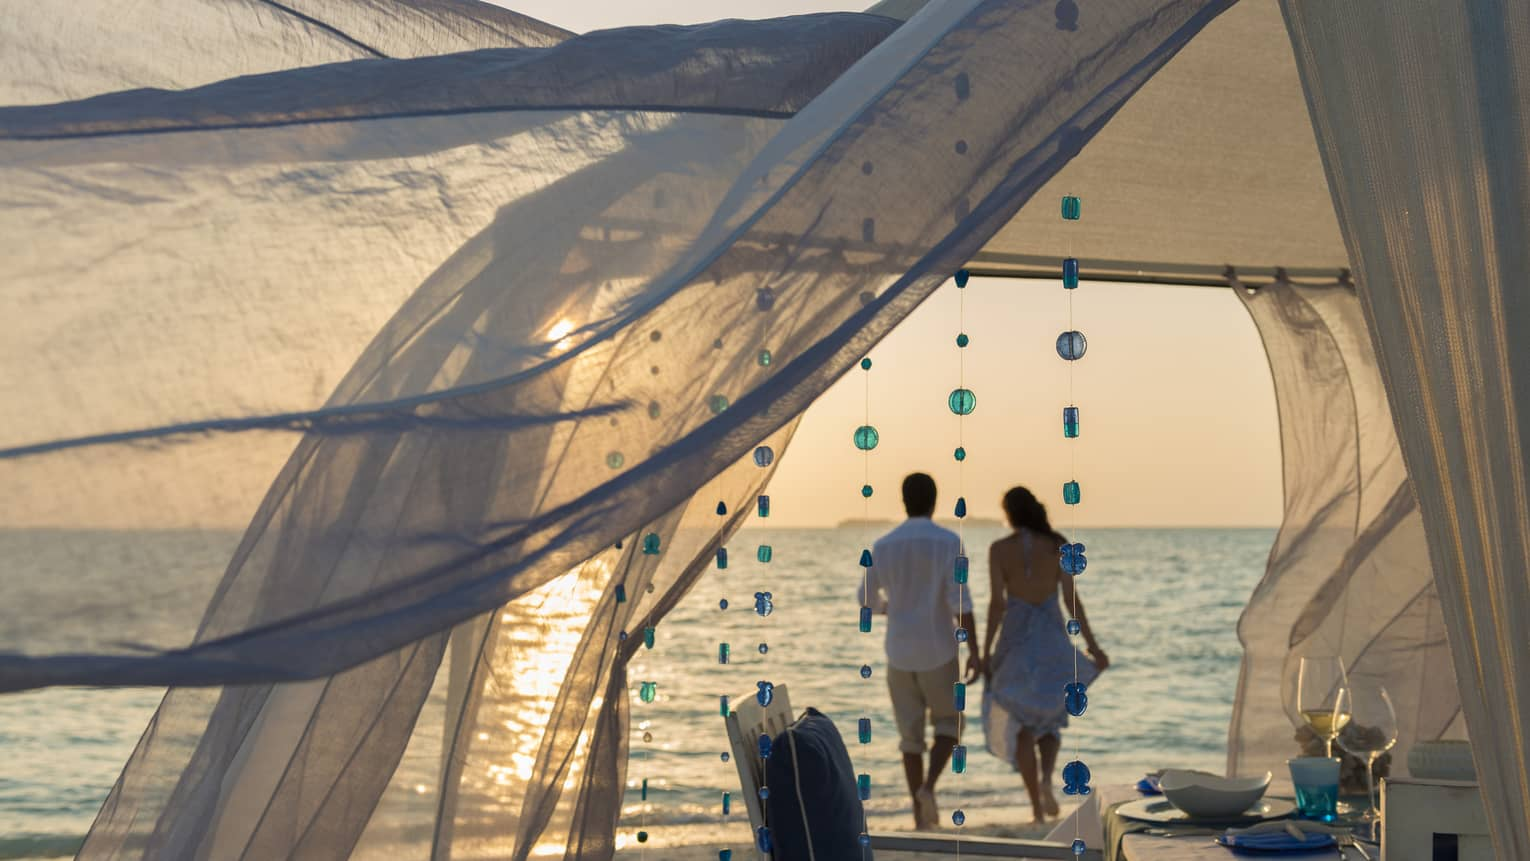 Sheer curtains blow in breeze, small blue beads hang from string, woman and man hold hands on beach in background